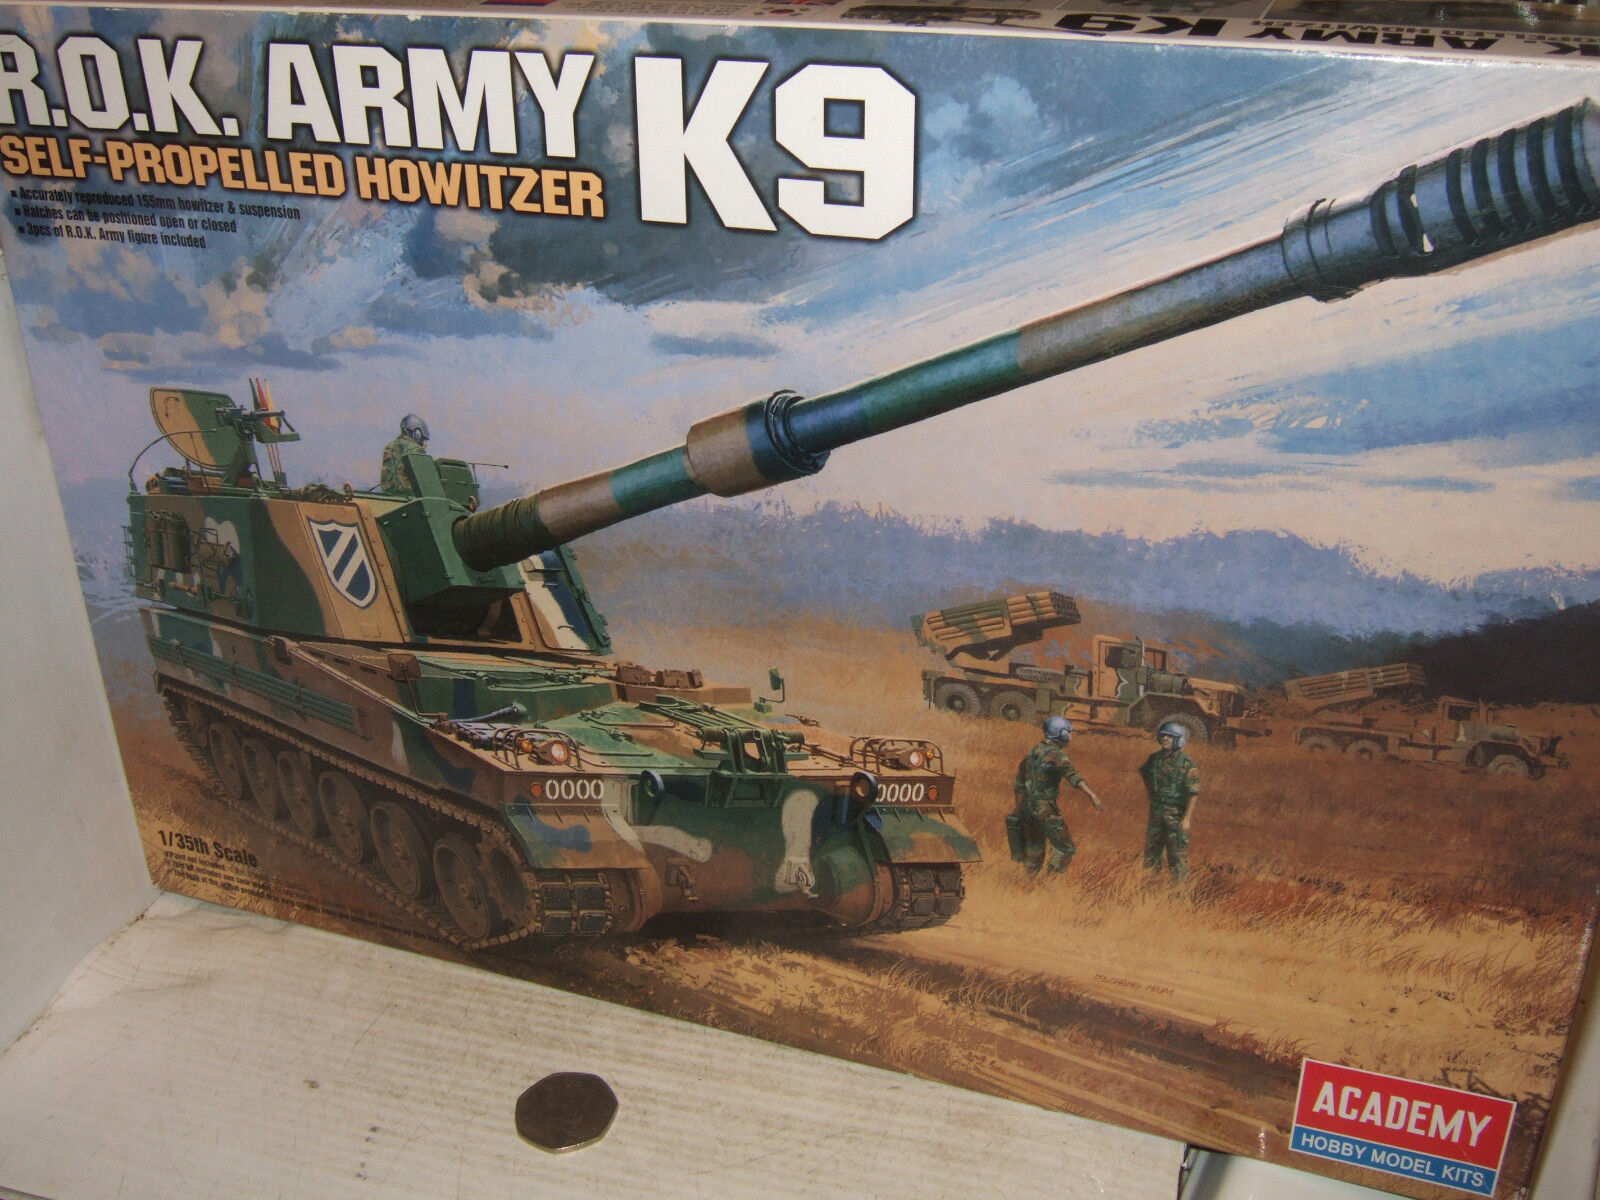 Academy 13219 Rep. South Korea K9 Self Propelled Howitzer Kit in 1 35 Scale.